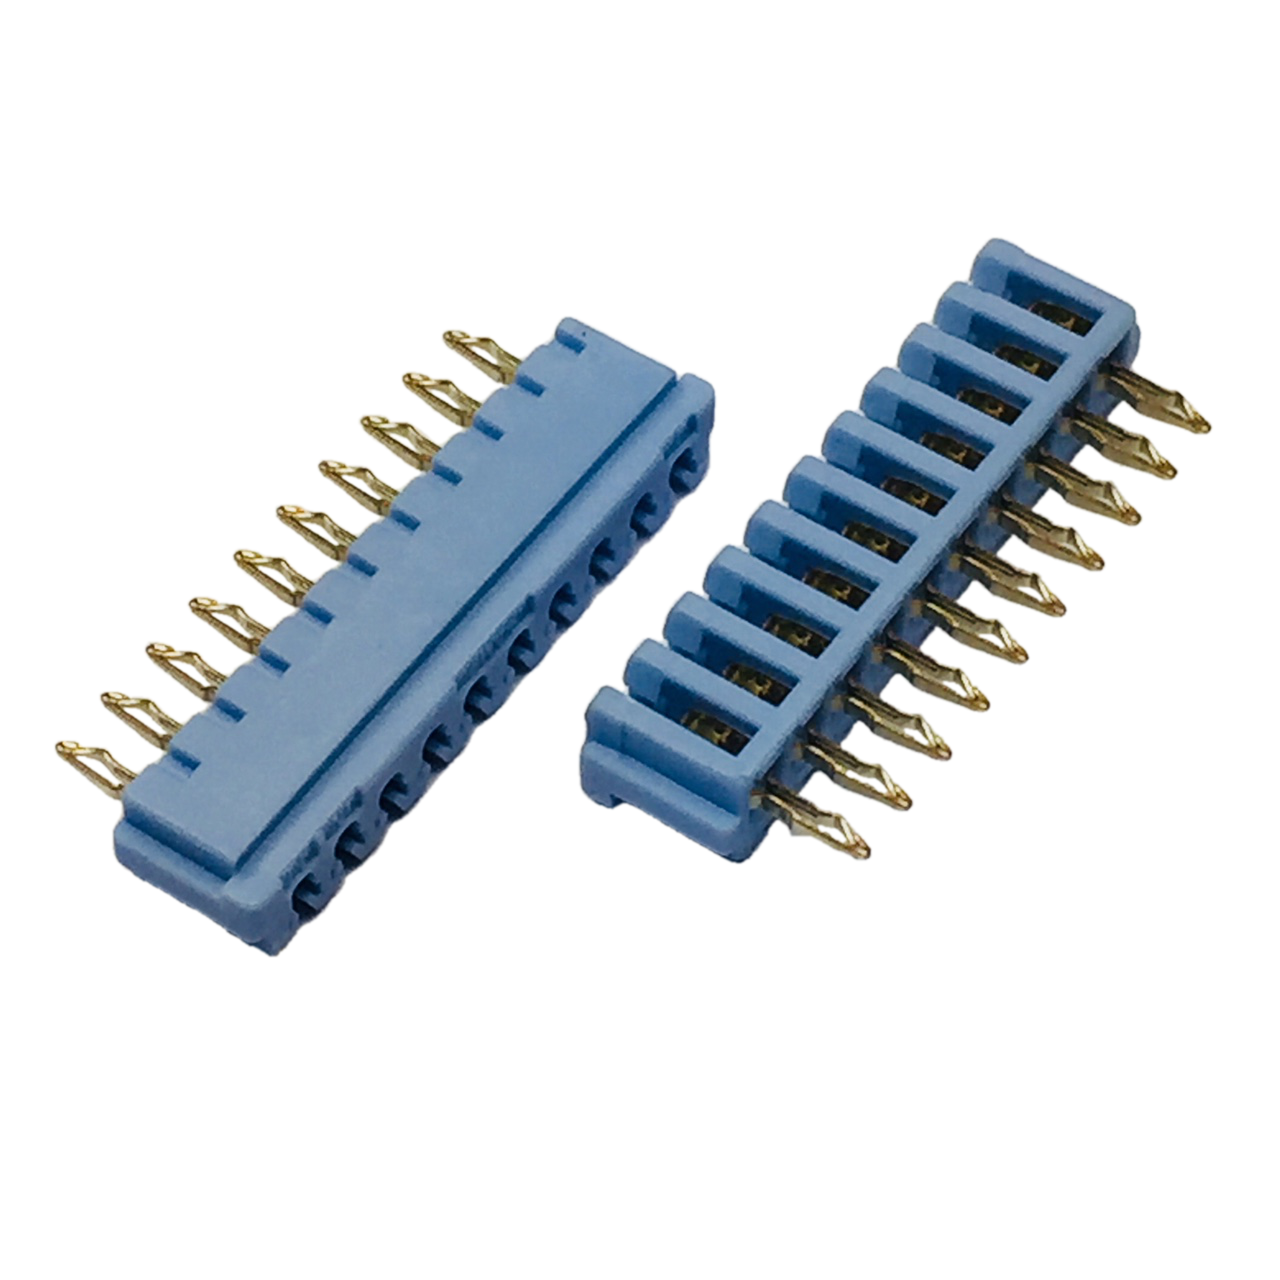 3-173985-0 Pack of 10 AMP-TE Connectivity-TYCO Conn IDC Connector ...